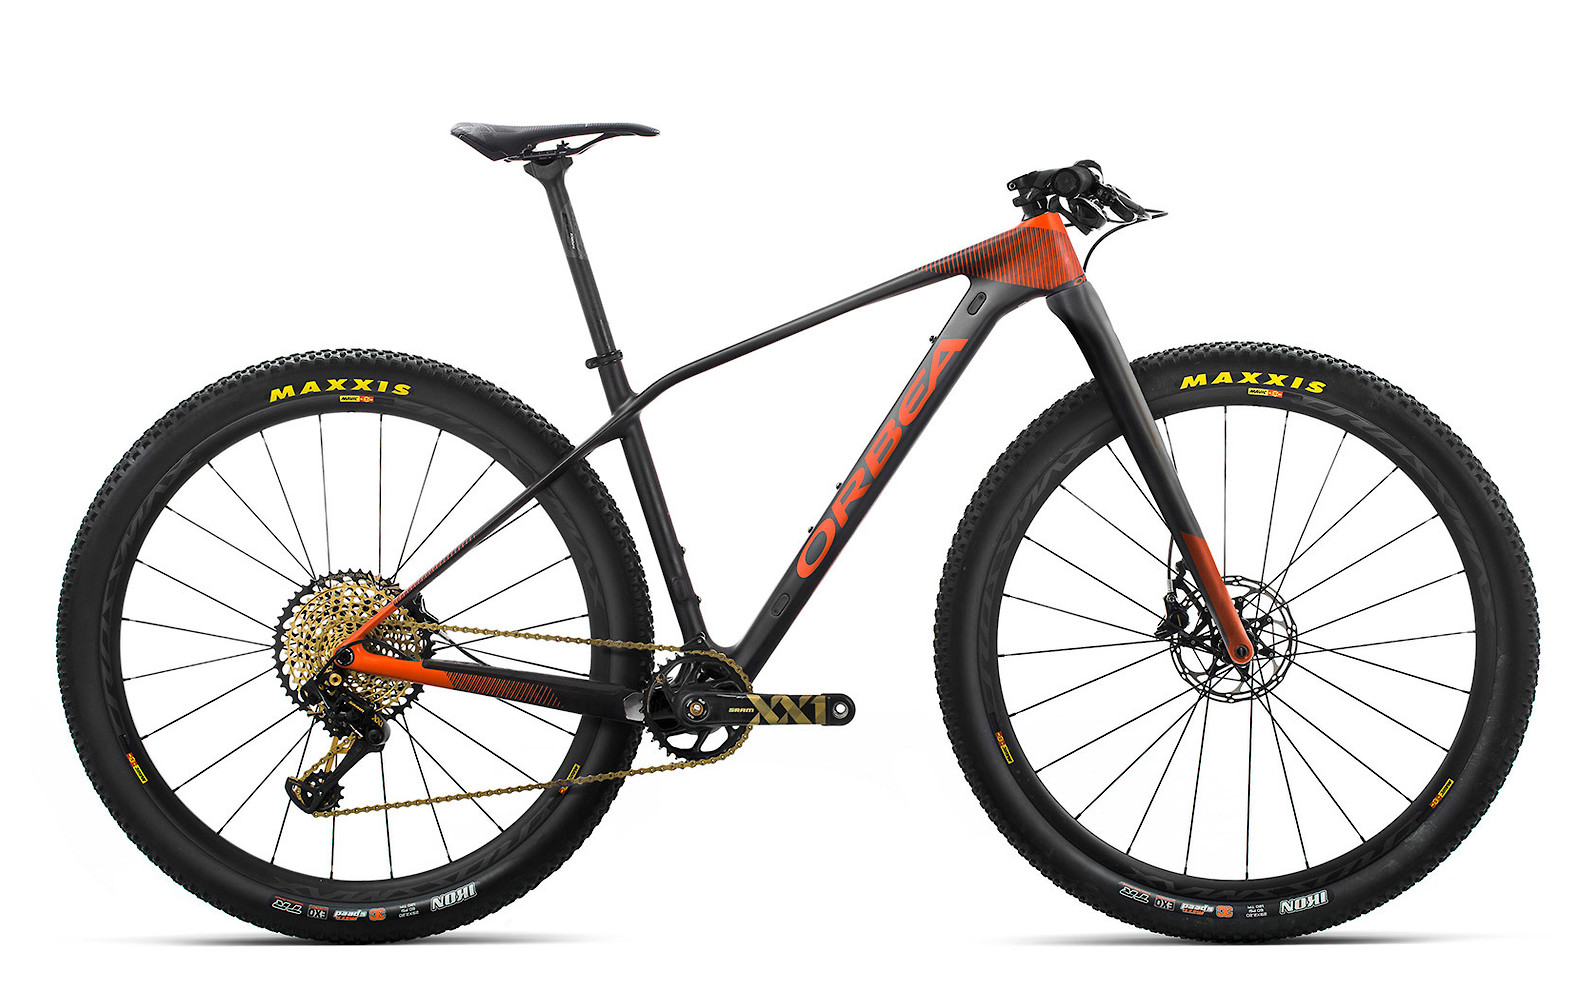 2019-Orbea-Alma-M-LTD-bike-1A